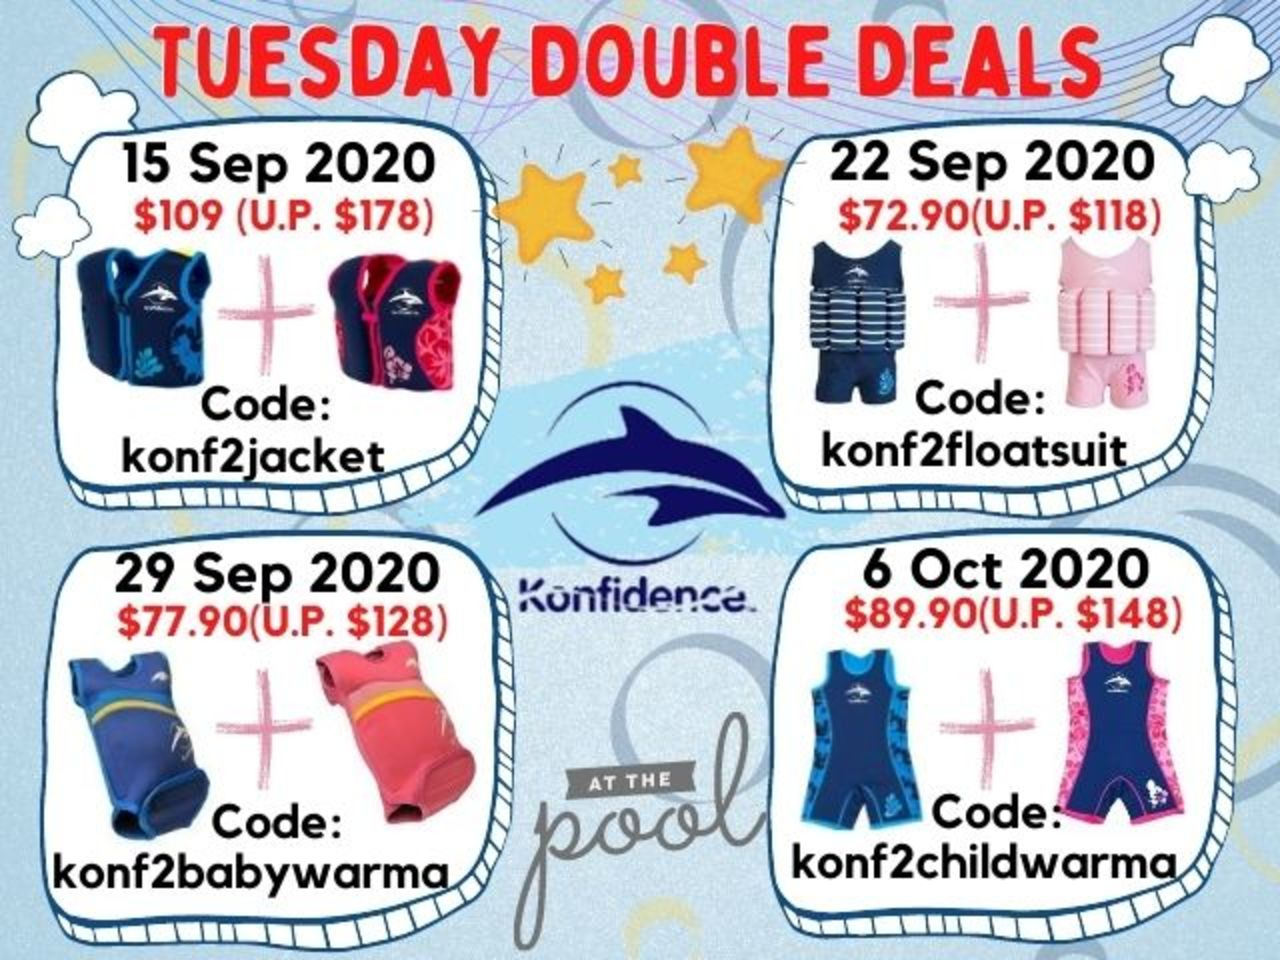 Tue 15 Sept Deal: The Original Konfidence Jacket Buy 2 at Only $109 (RRP $178)